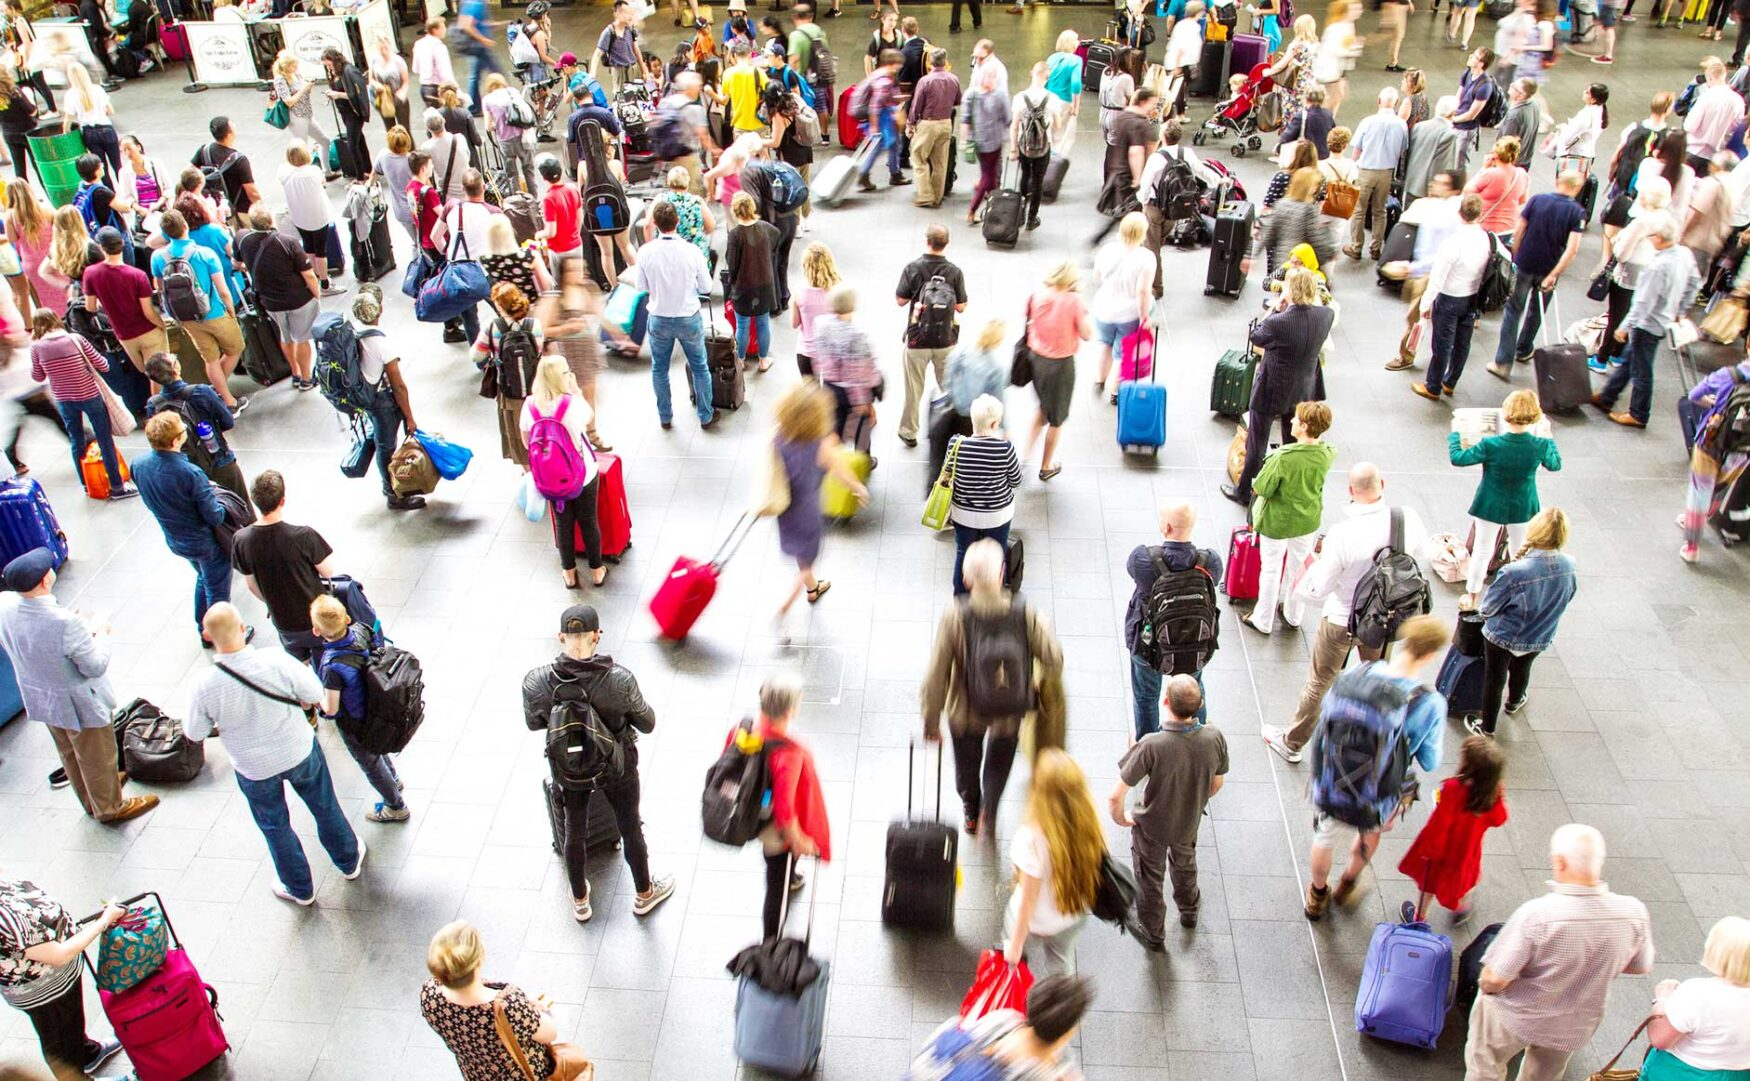 travelers in busy airport concourse